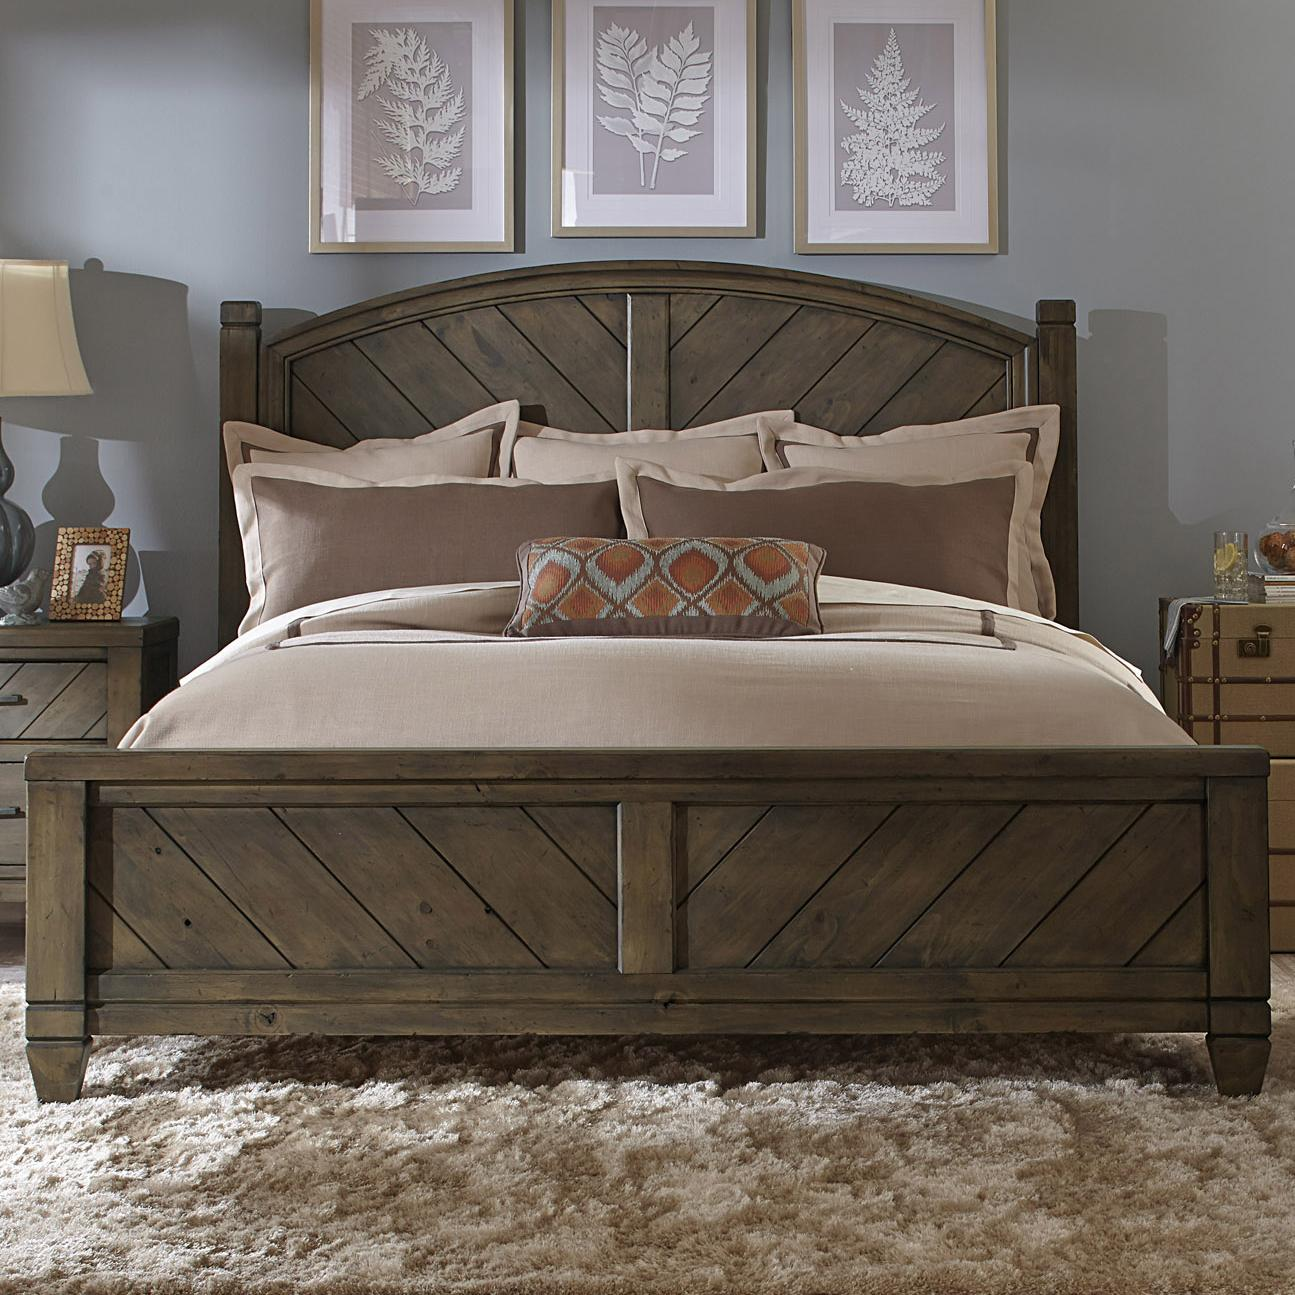 Liberty Furniture Modern Country King Poster Bed - Item Number: 833-BR-KPS